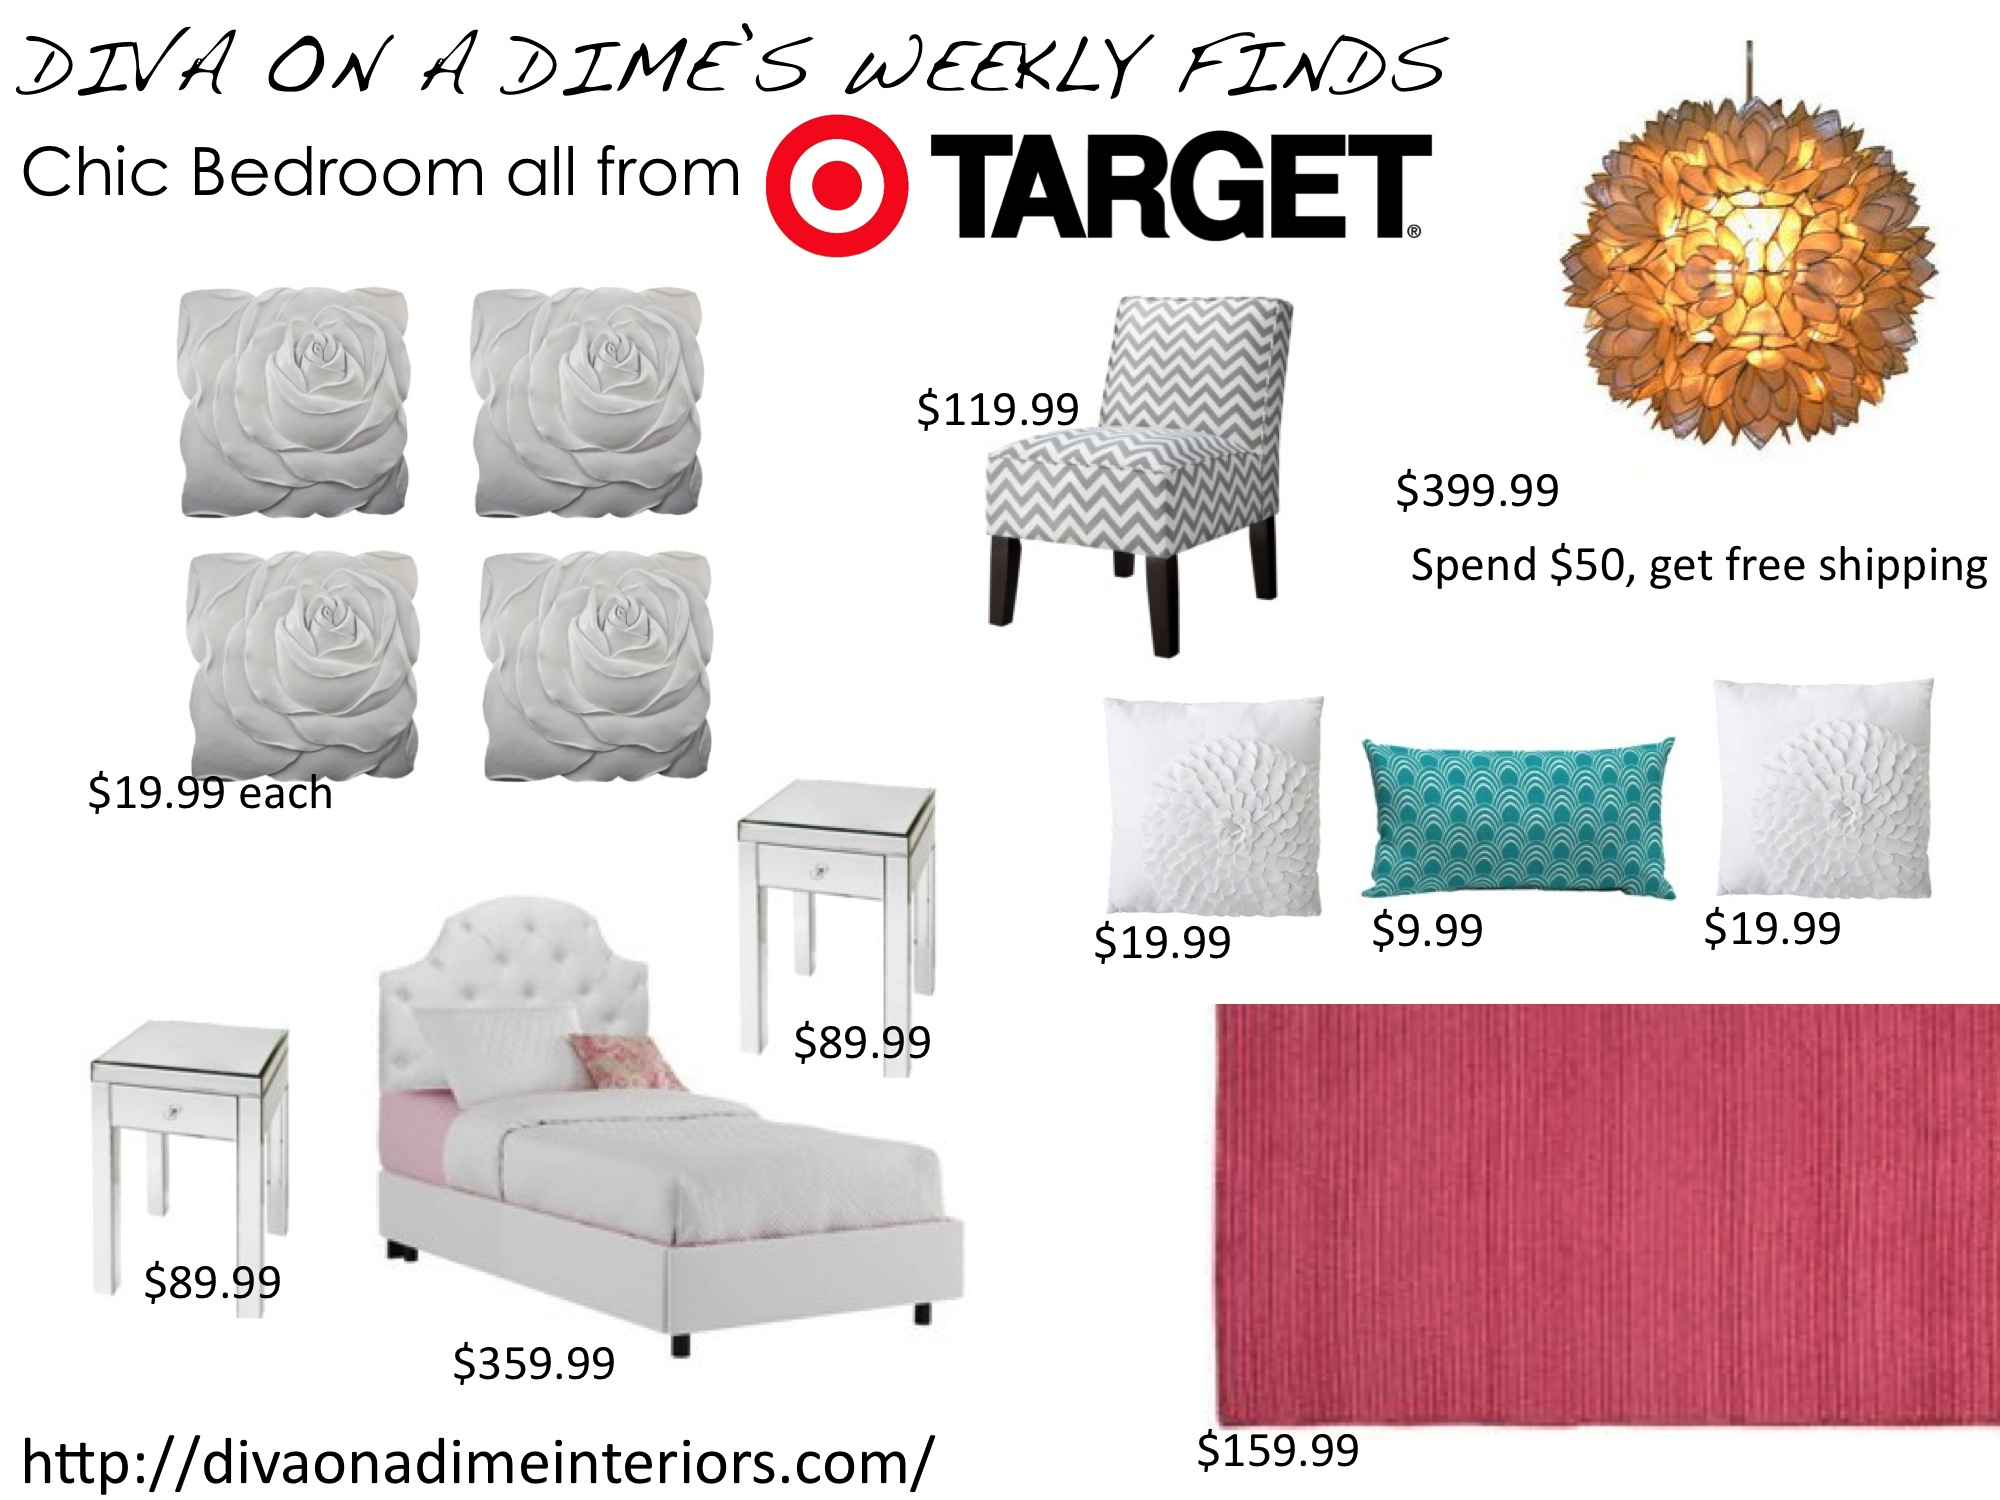 Weekly Finds: Chic Teen Bedroom by Target